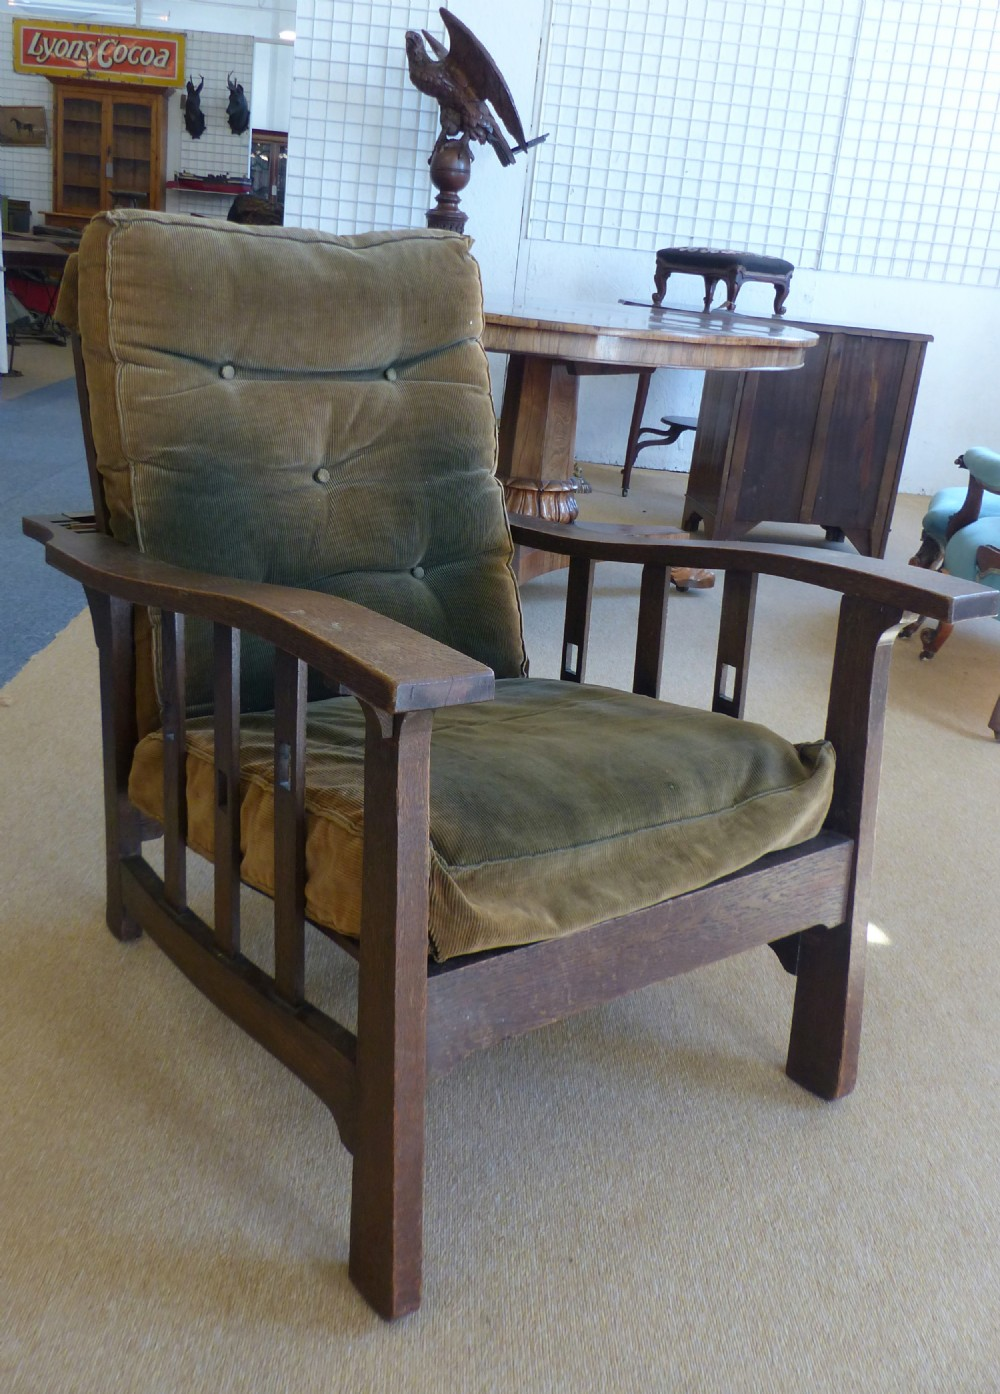 arts cr5afts chair